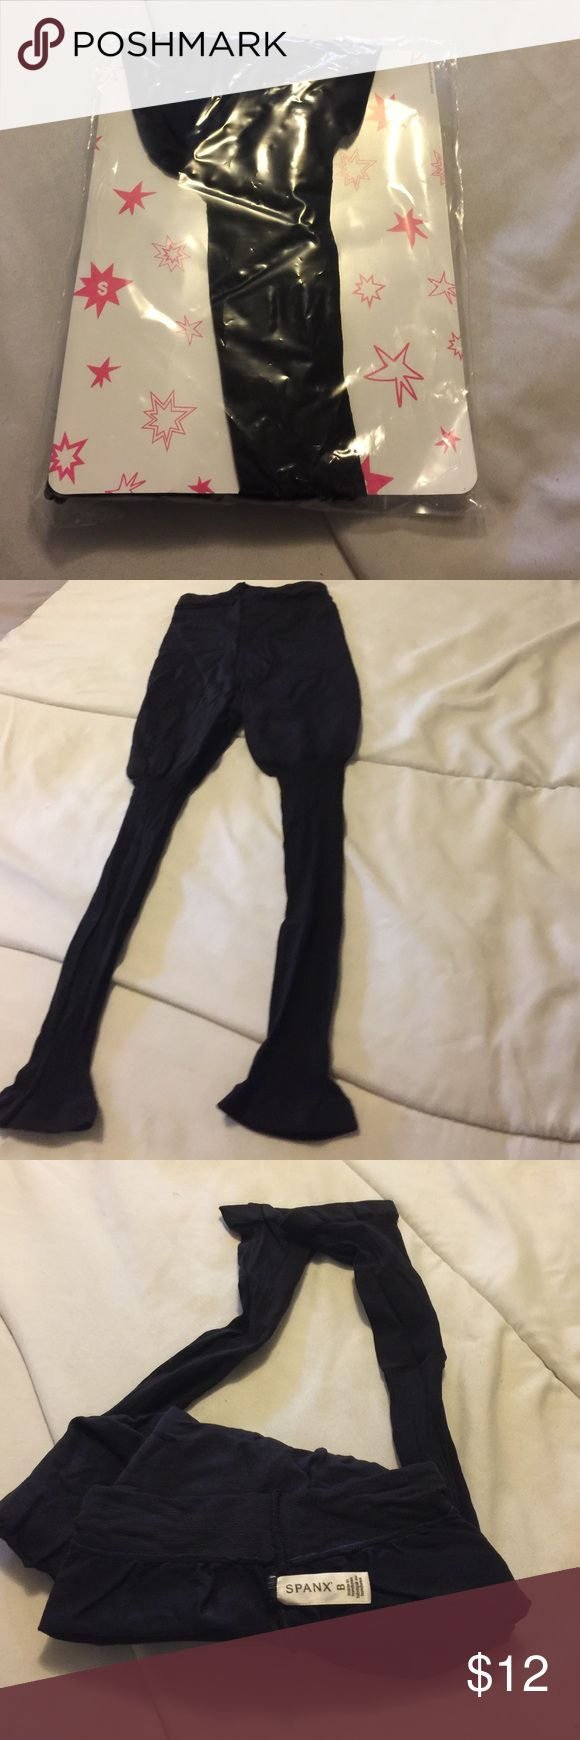 Spanx size B footless tights Never been worn . No trades or modeling.Thanks for looking.Happy poshing!! SPANX Intimates & Sleepwear Shapewear